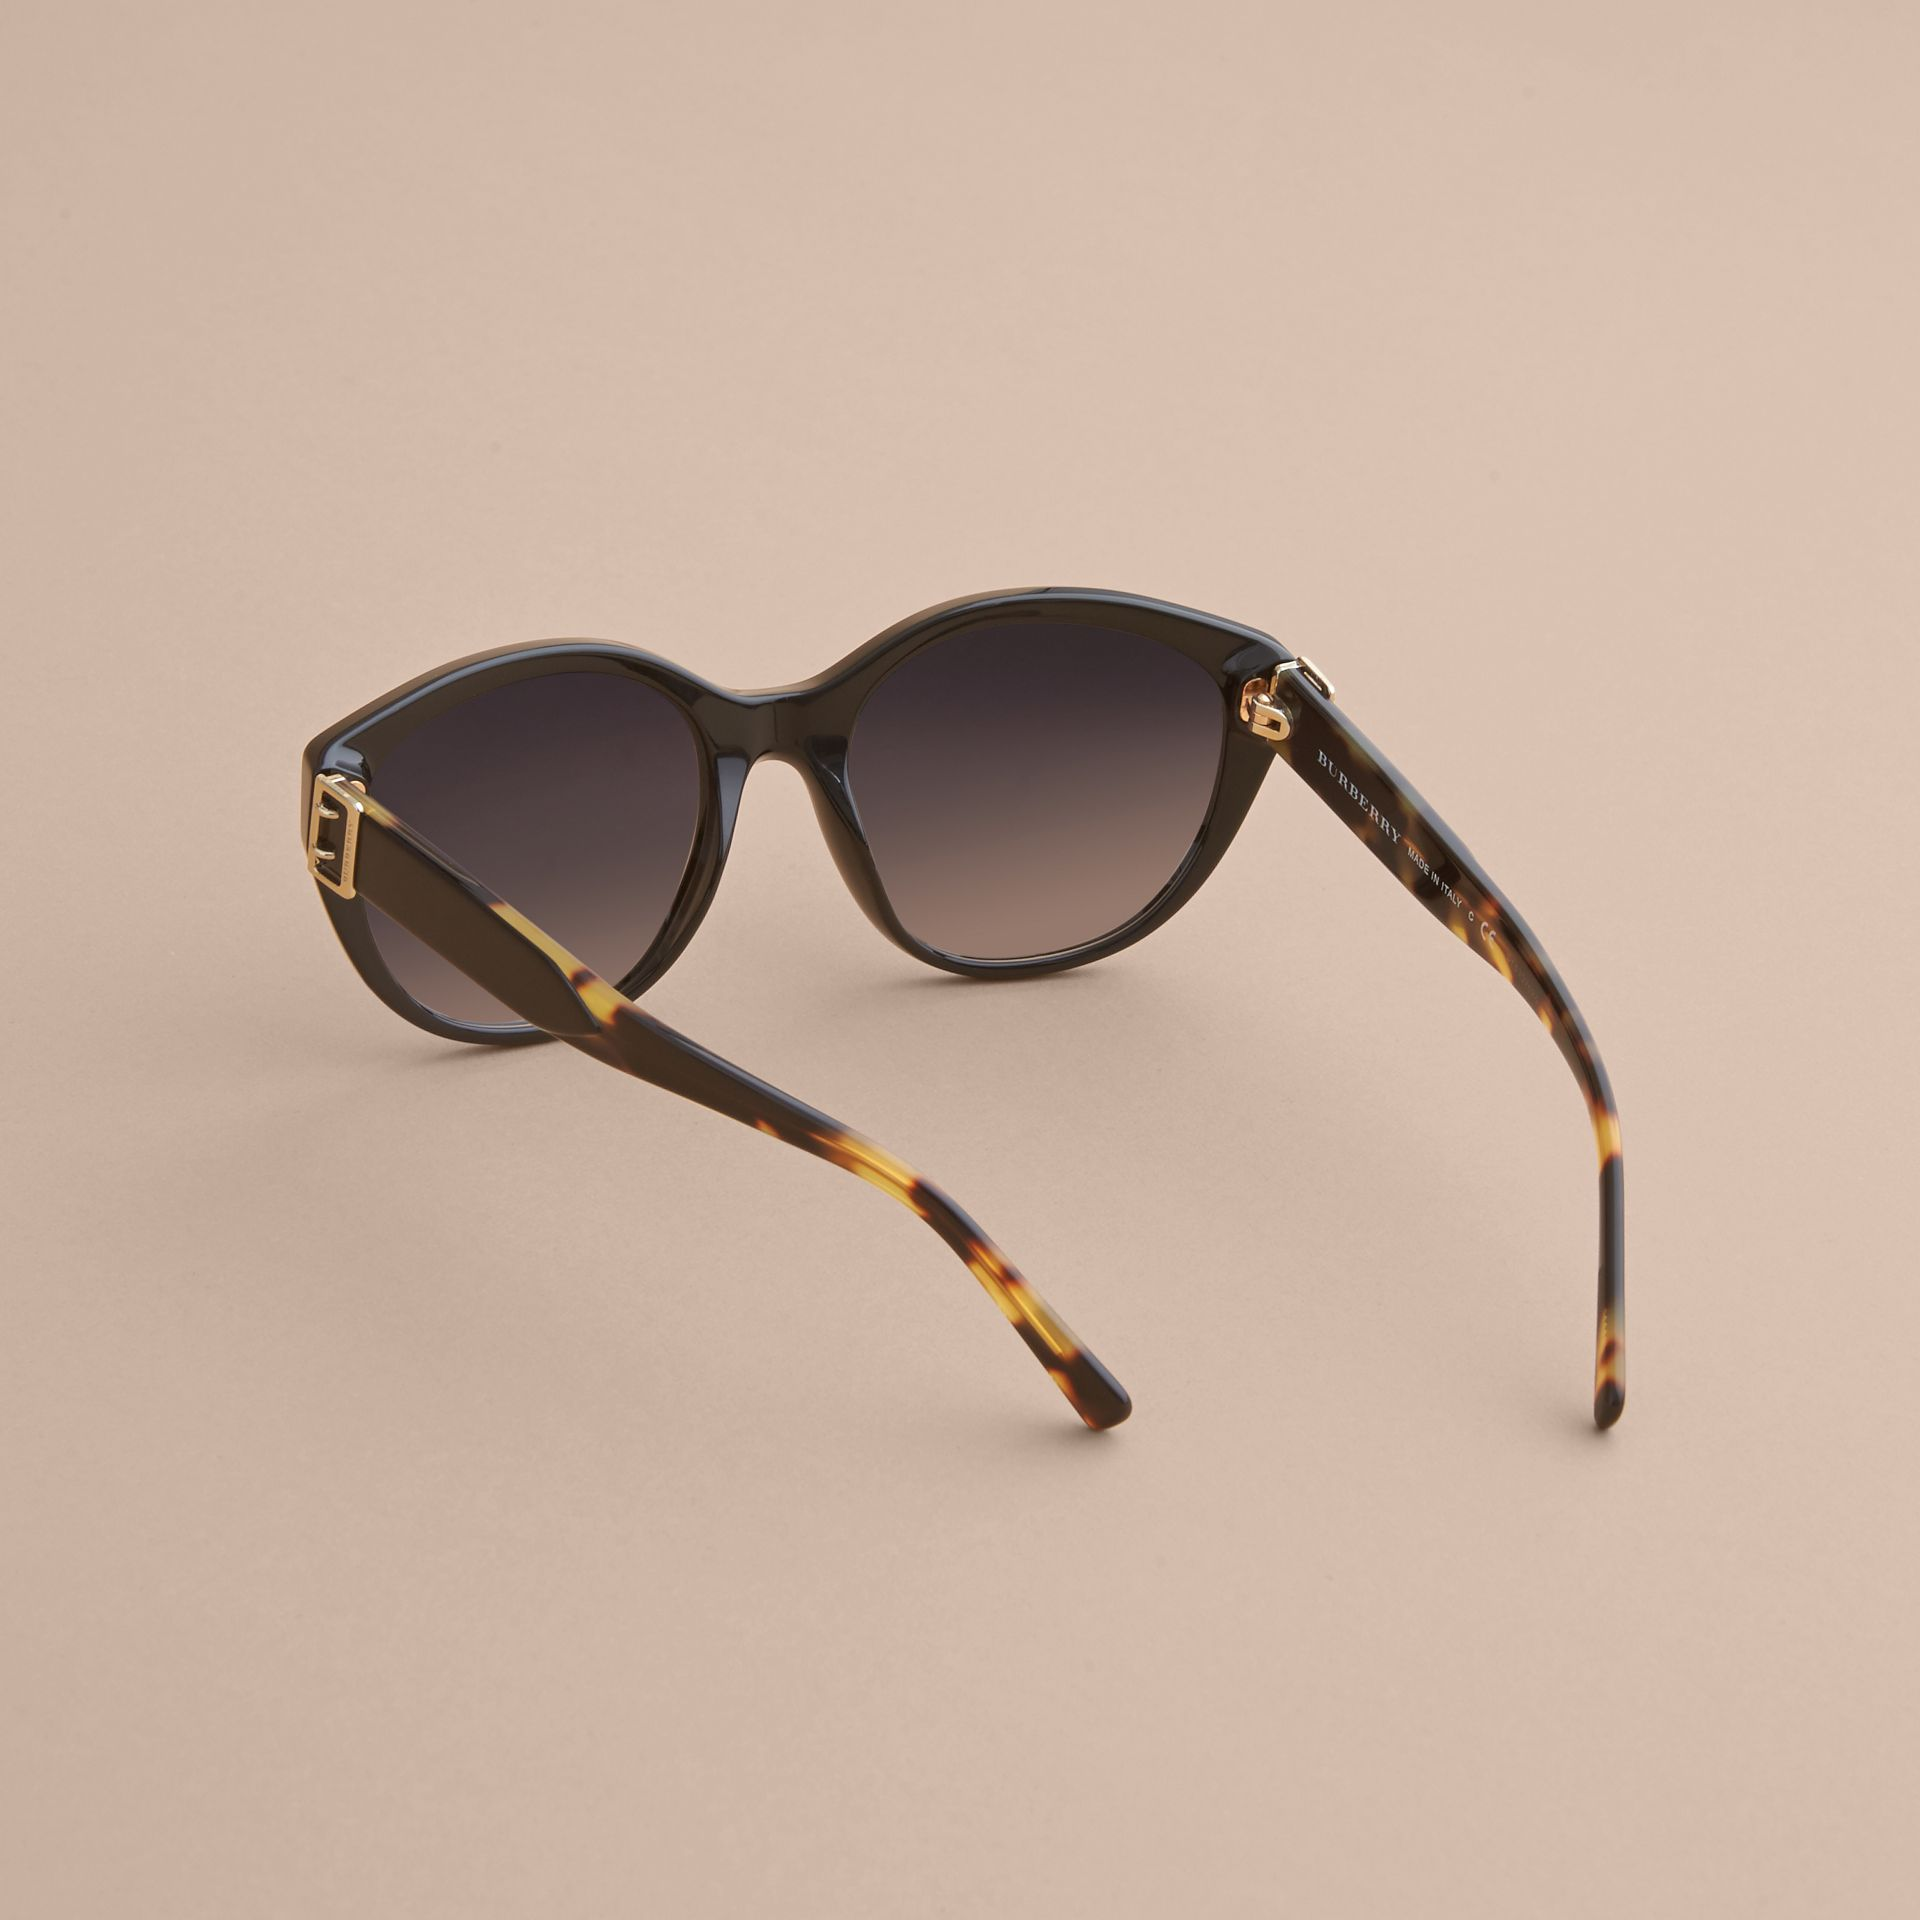 Buckle Detail Round Frame Sunglasses in Black - Women | Burberry United States - gallery image 4